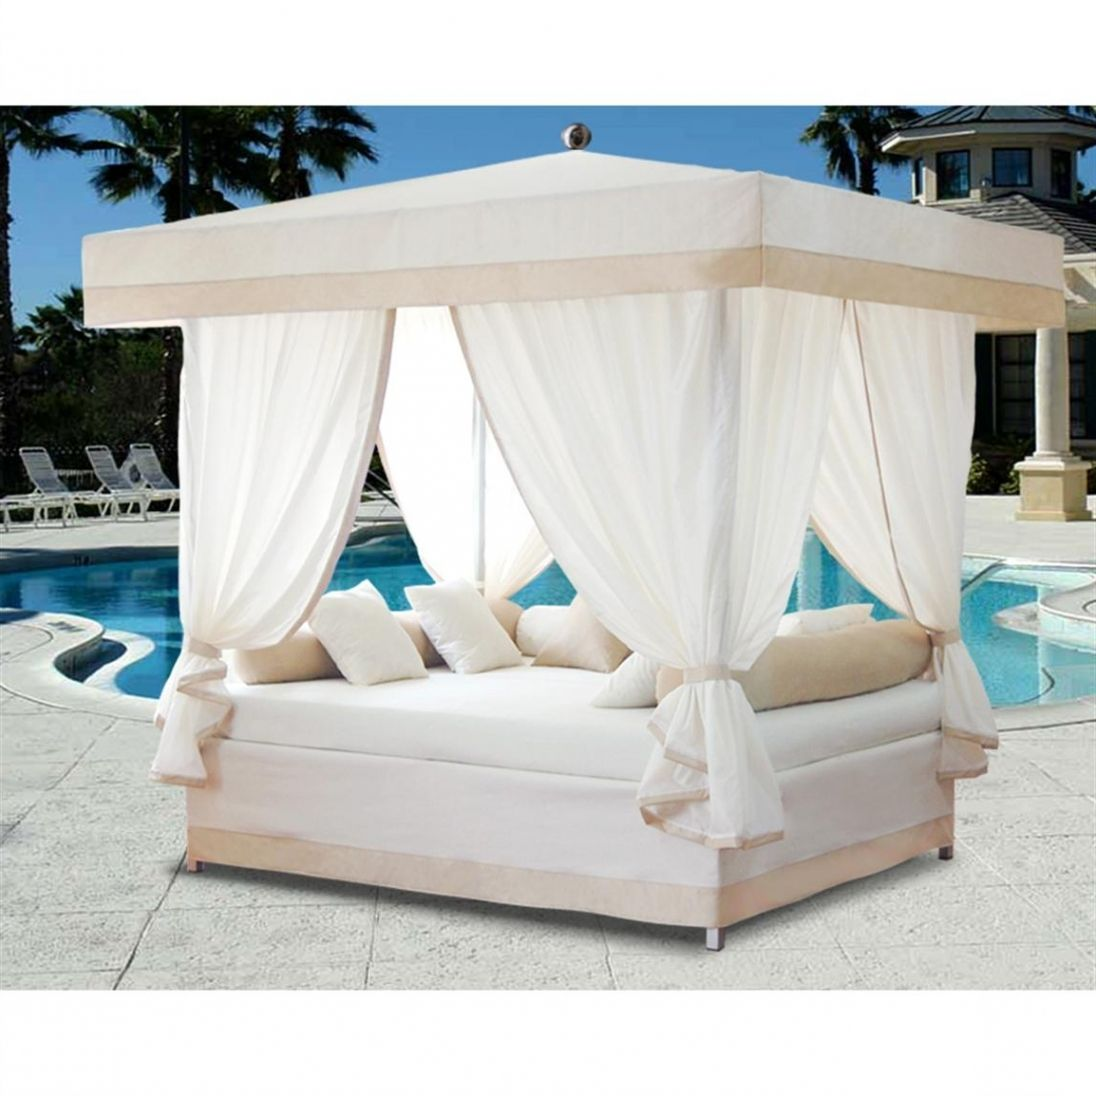 40 Beautiful Cozy And Romantic Outdoor Canopy Bed Ideas Collections Freshouz Com Outdoor Canopy Bed Luxury Patio Furniture Full Bedding Sets